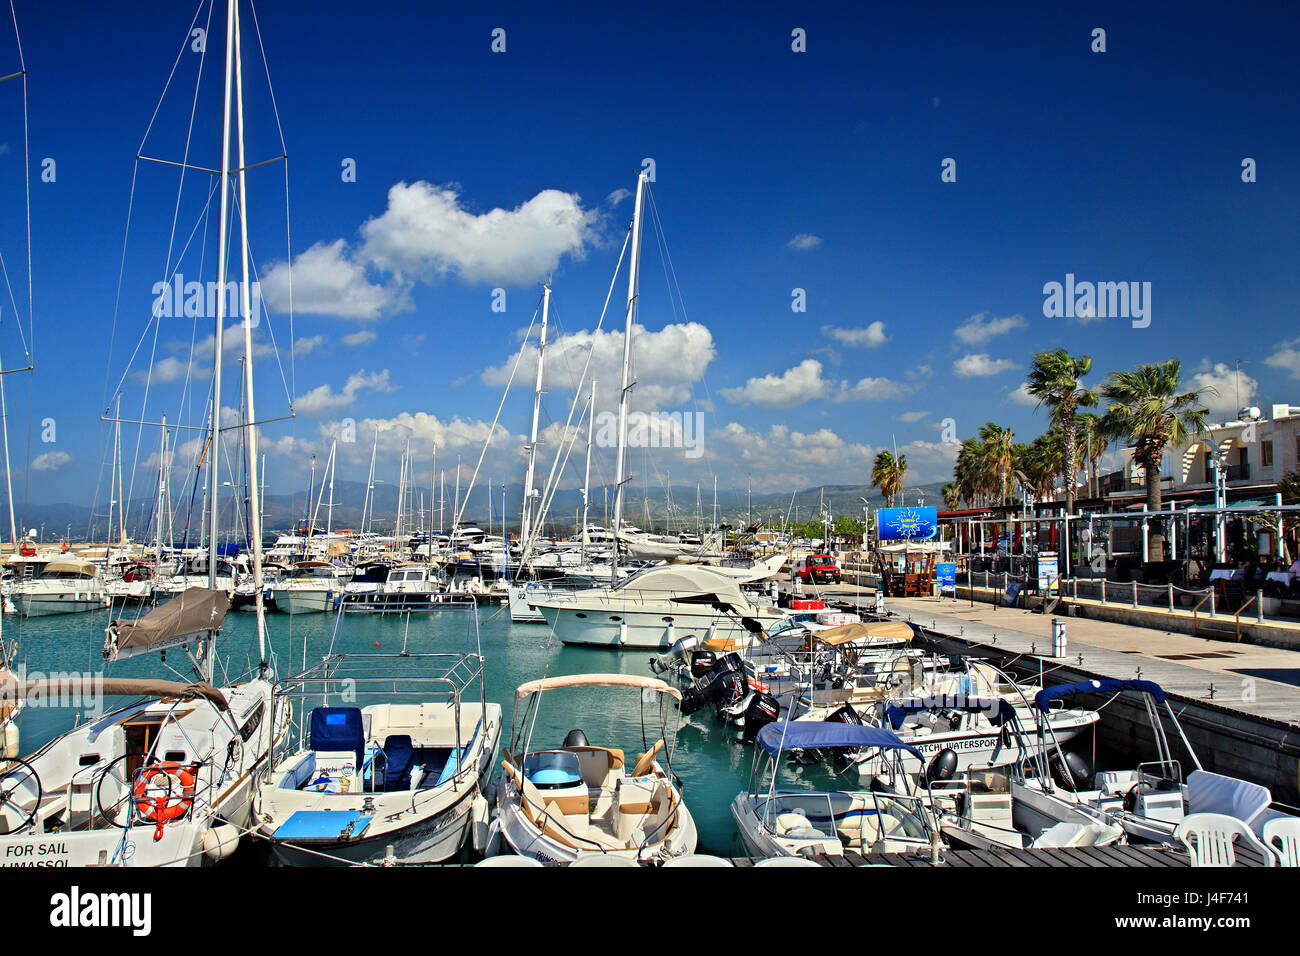 The port of Latchi (or 'Lakki') village, Paphos district, Cyprus. - Stock Image